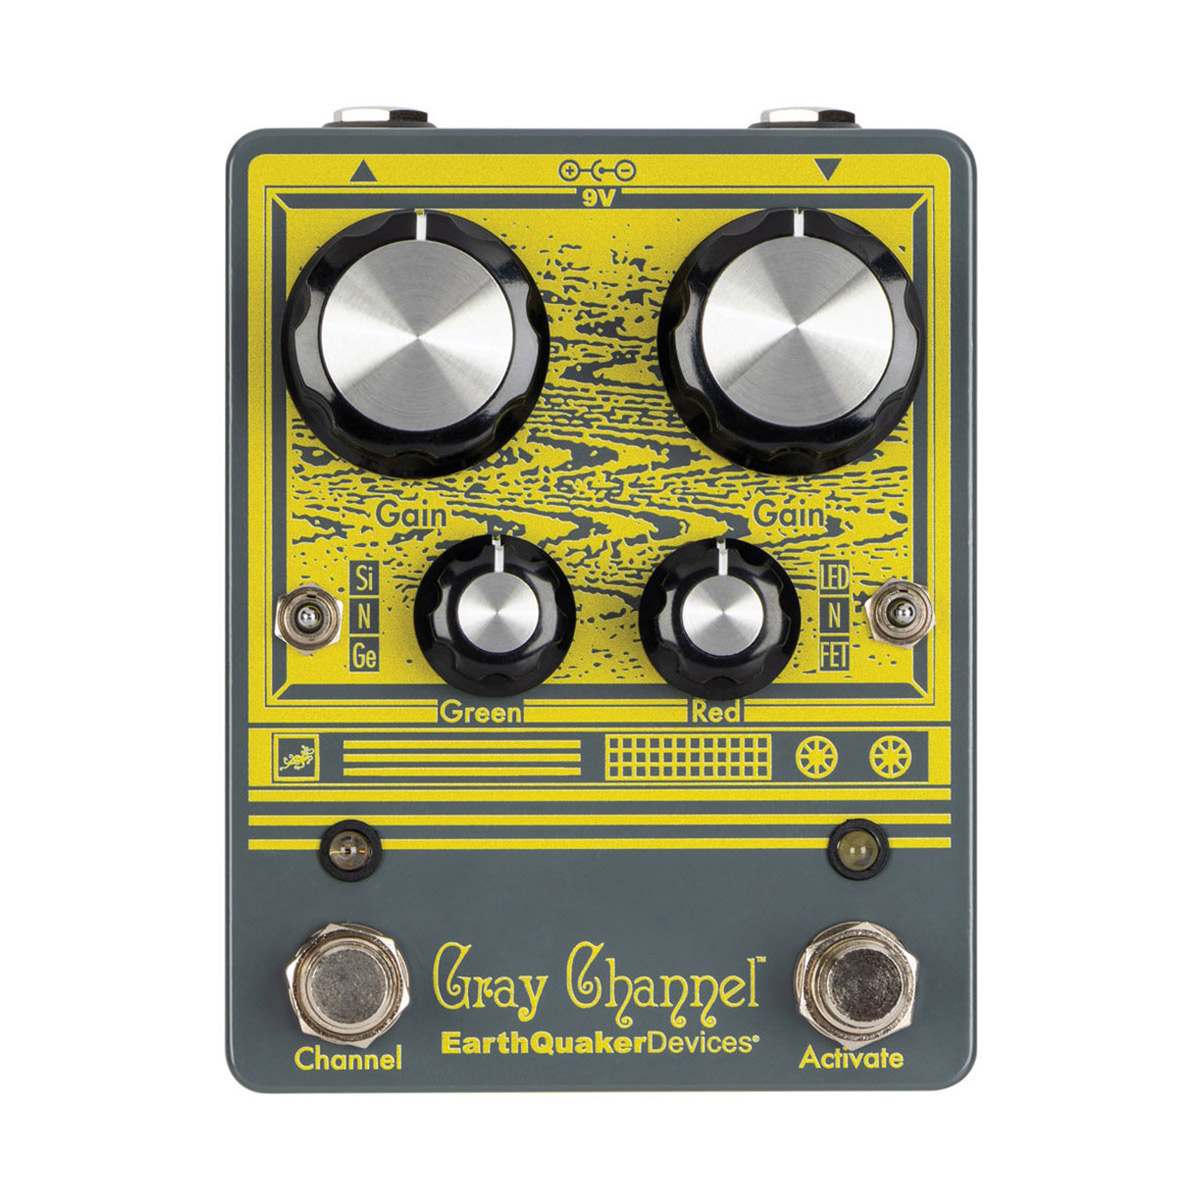 EarthQuaker Devices Gray Channel コンパクトエフェクター ダイナミックダートダブラー 【アースクエイカーデバイス】